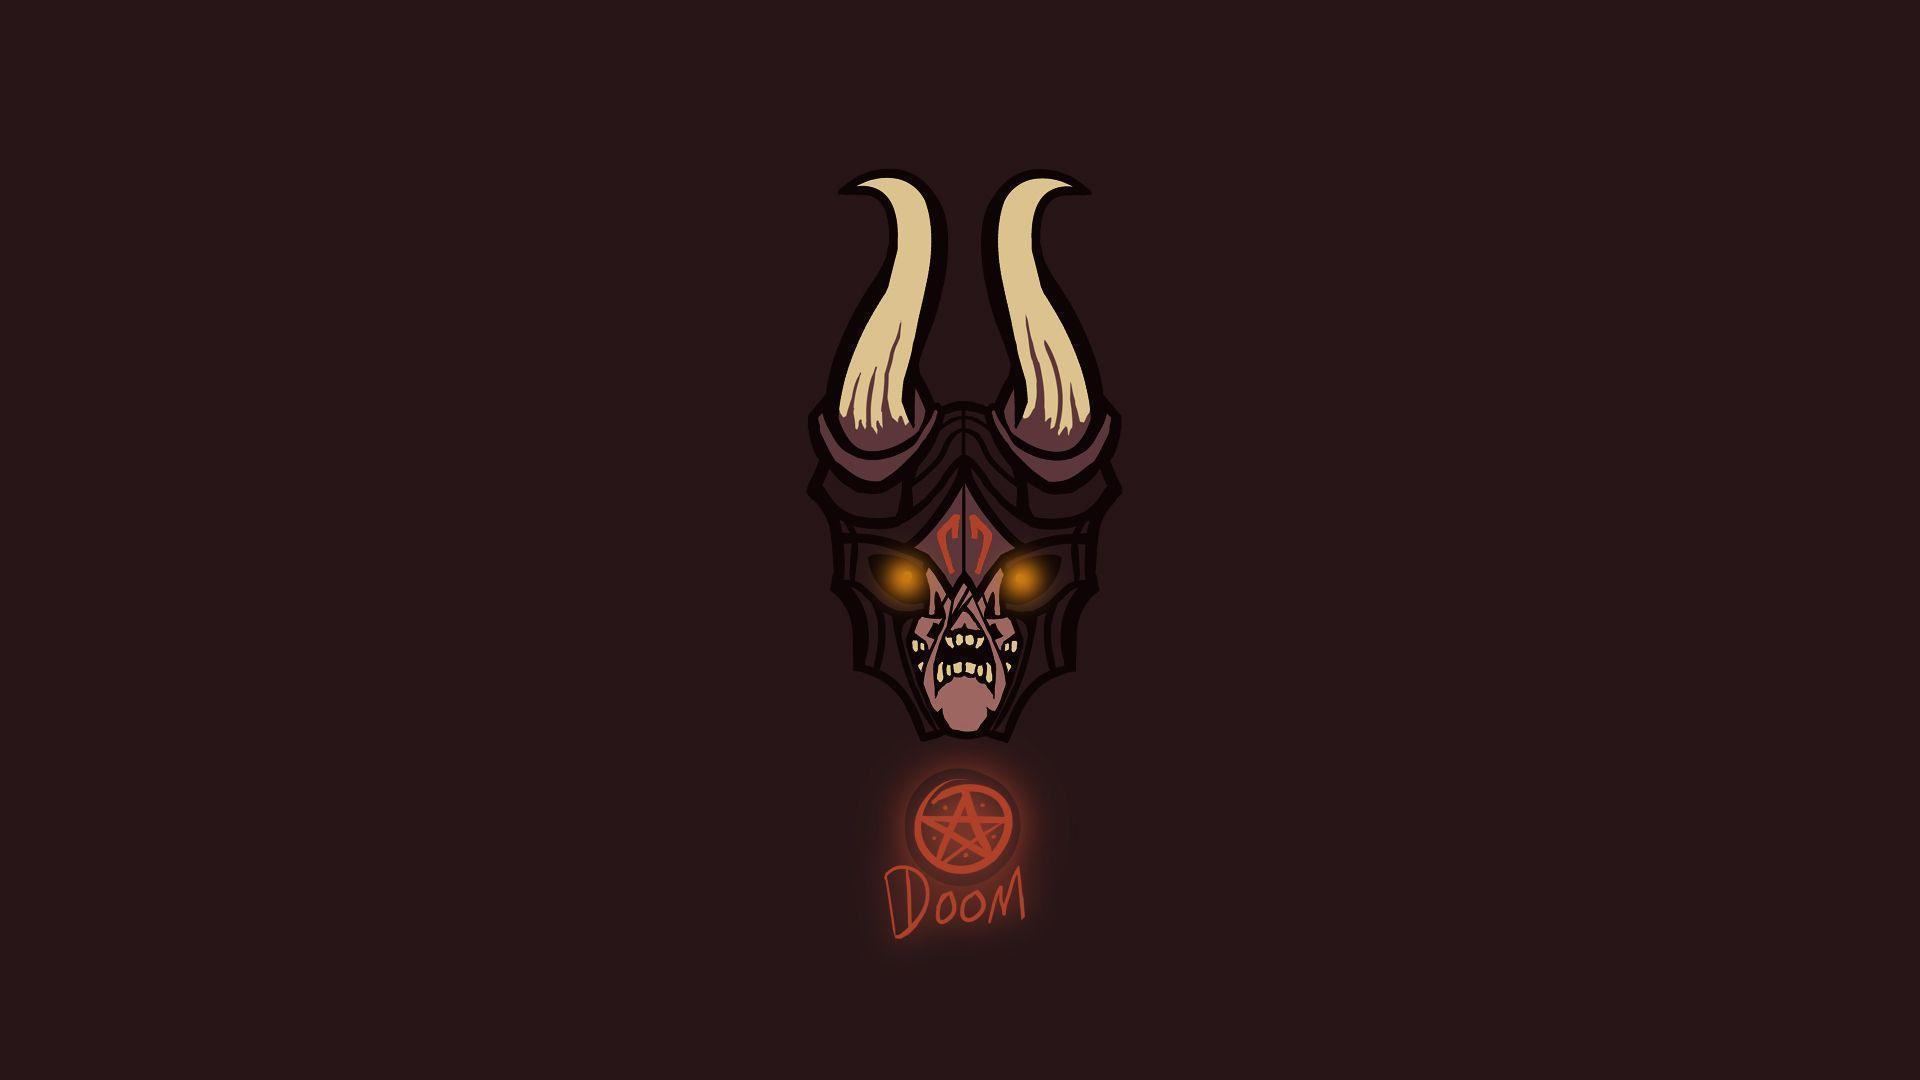 Doom: The Lucifer Wallpaper | Dota 2 HD Wallpapers